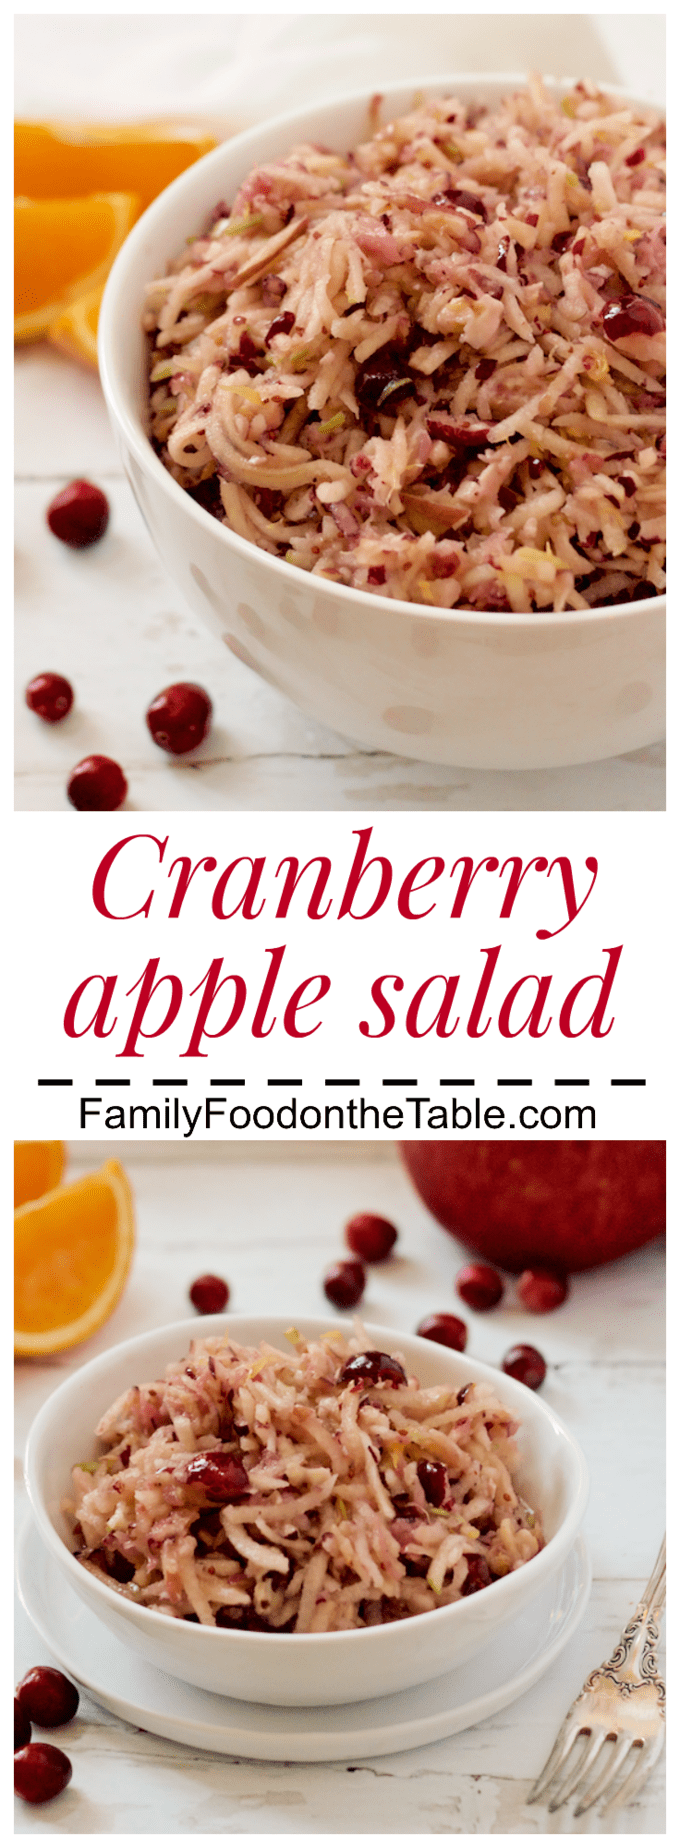 Cranberry apple salad - a bright, fresh fruit salad perfect for brunch or snacking! | FamilyFoodontheTable.com